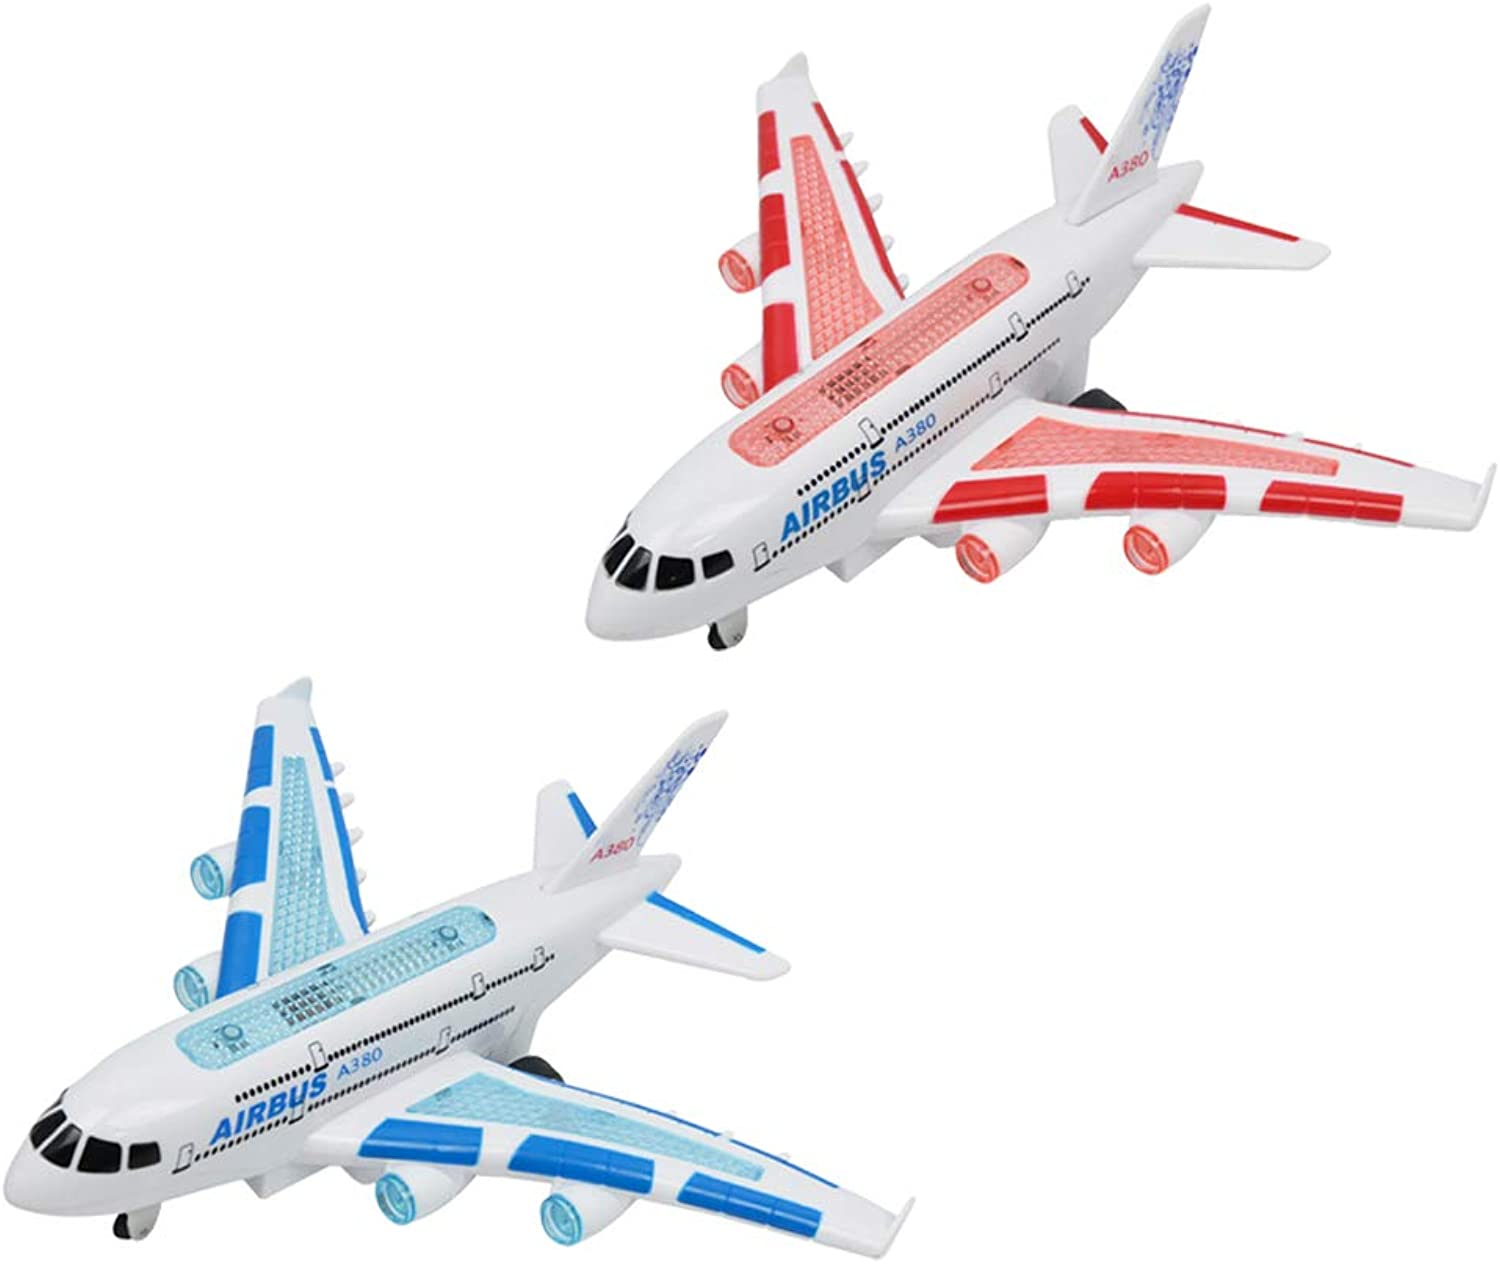 D DOLITY RC Airplane Airbus A380 Toy with Flashing Light & Realistic Jet Engine Sound Boys Kid Gift - 2Set